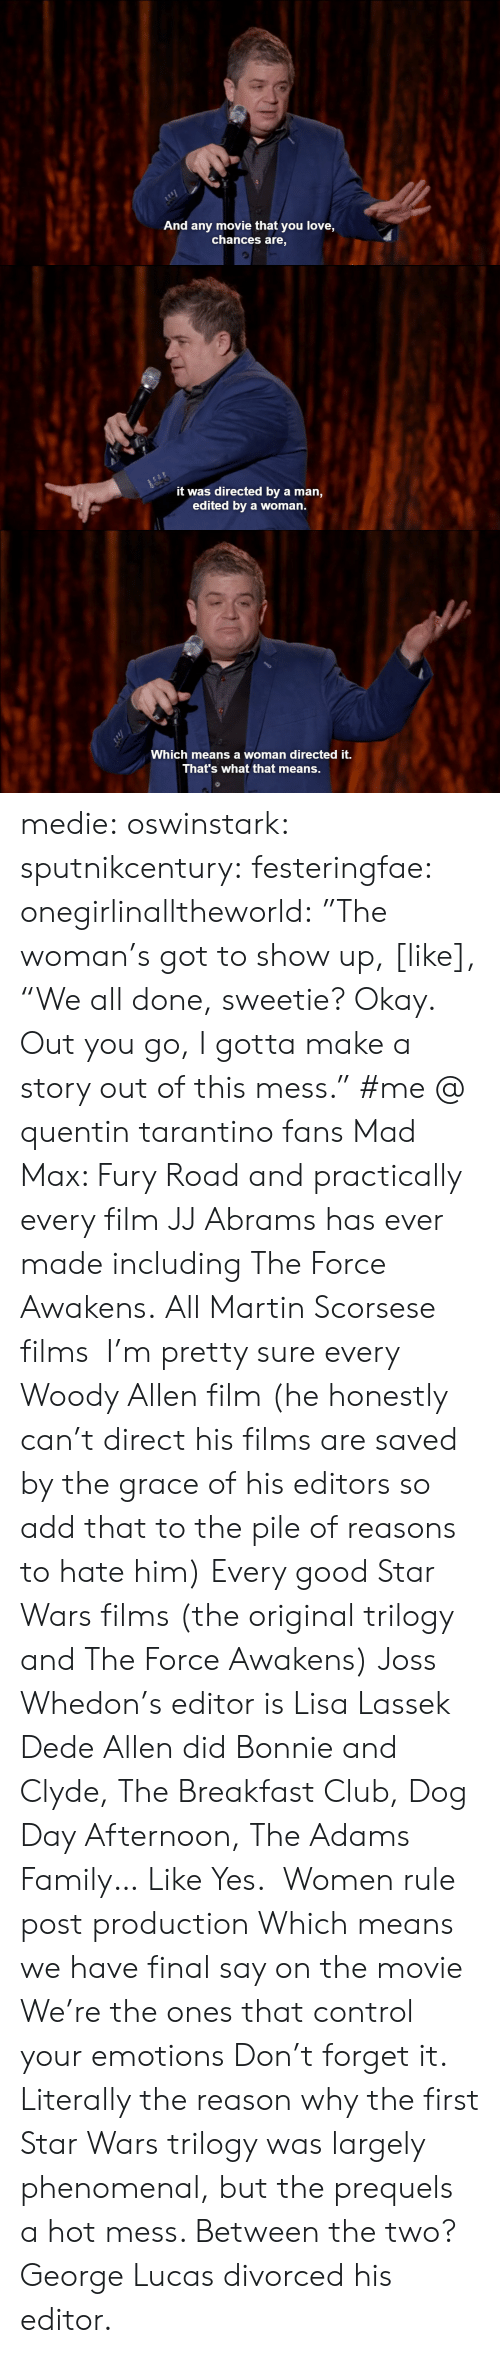 """Club, Family, and Love: And any movie that you love,  chances are,   it was directed by a man,  edited by a woman.   c-  Which means a woman directed it.  That's what that means. medie:   oswinstark:  sputnikcentury:  festeringfae:  onegirlinalltheworld:  """"The woman's got to show up, [like], """"We all done, sweetie? Okay. Out you go, I gotta make a story out of this mess.""""  #me @ quentin tarantino fans  Mad Max: Fury Road and practically every film JJ Abrams has ever made including The Force Awakens.  All Martin Scorsese films I'm pretty sure every Woody Allen film (he honestly can't direct his films are saved by the grace of his editors so add that to the pile of reasons to hate him) Every good Star Wars films (the original trilogy and The Force Awakens) Joss Whedon's editor is Lisa Lassek Dede Allen did Bonnie and Clyde, The Breakfast Club, Dog Day Afternoon, The Adams Family… Like Yes. Women rule post production Which means we have final say on the movie We're the ones that control your emotions Don't forget it.  Literally the reason why the first Star Wars trilogy was largely phenomenal, but the prequels a hot mess.  Between the two? George Lucas divorced his editor."""